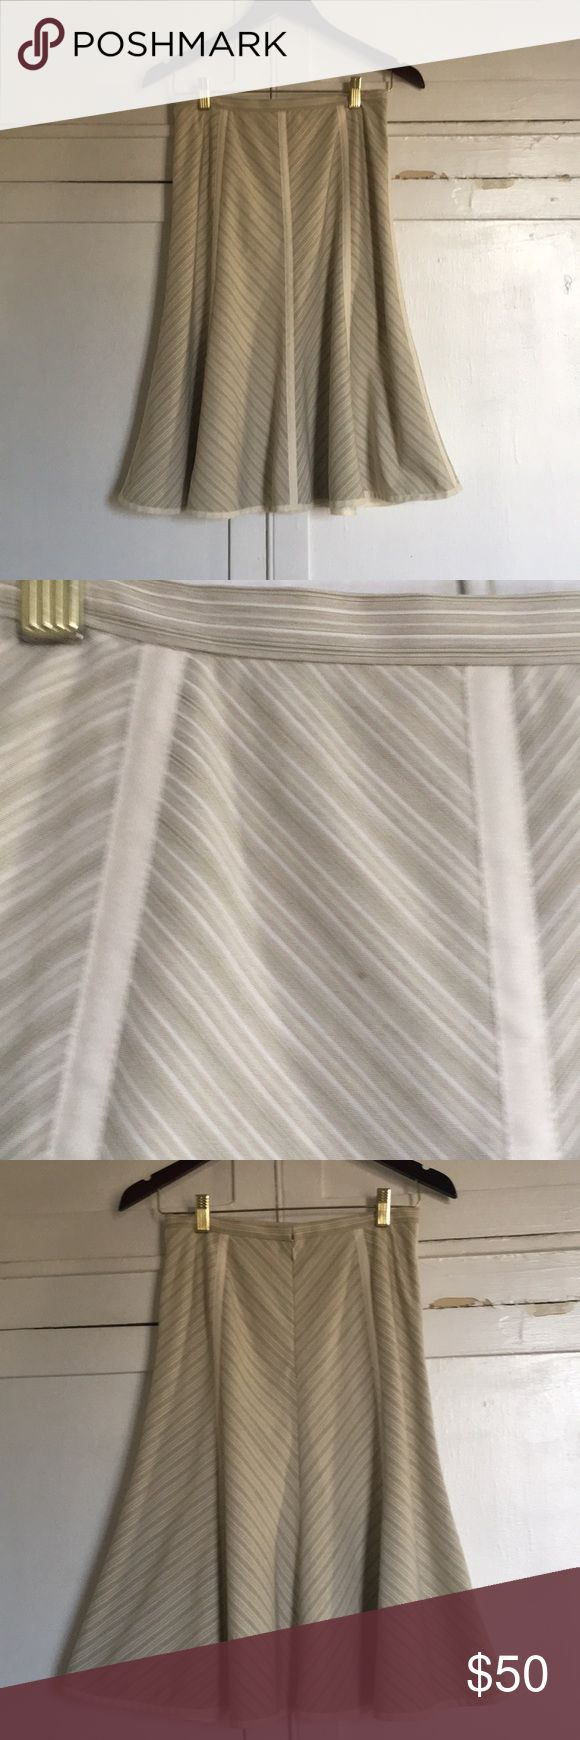 Antonio Melani beige trumpet skirt Beautiful trumpet skirt, striped. Excellent condition, one tiny spot on the front, pictured. size 2. ANTONIO MELANI Skirts Midi